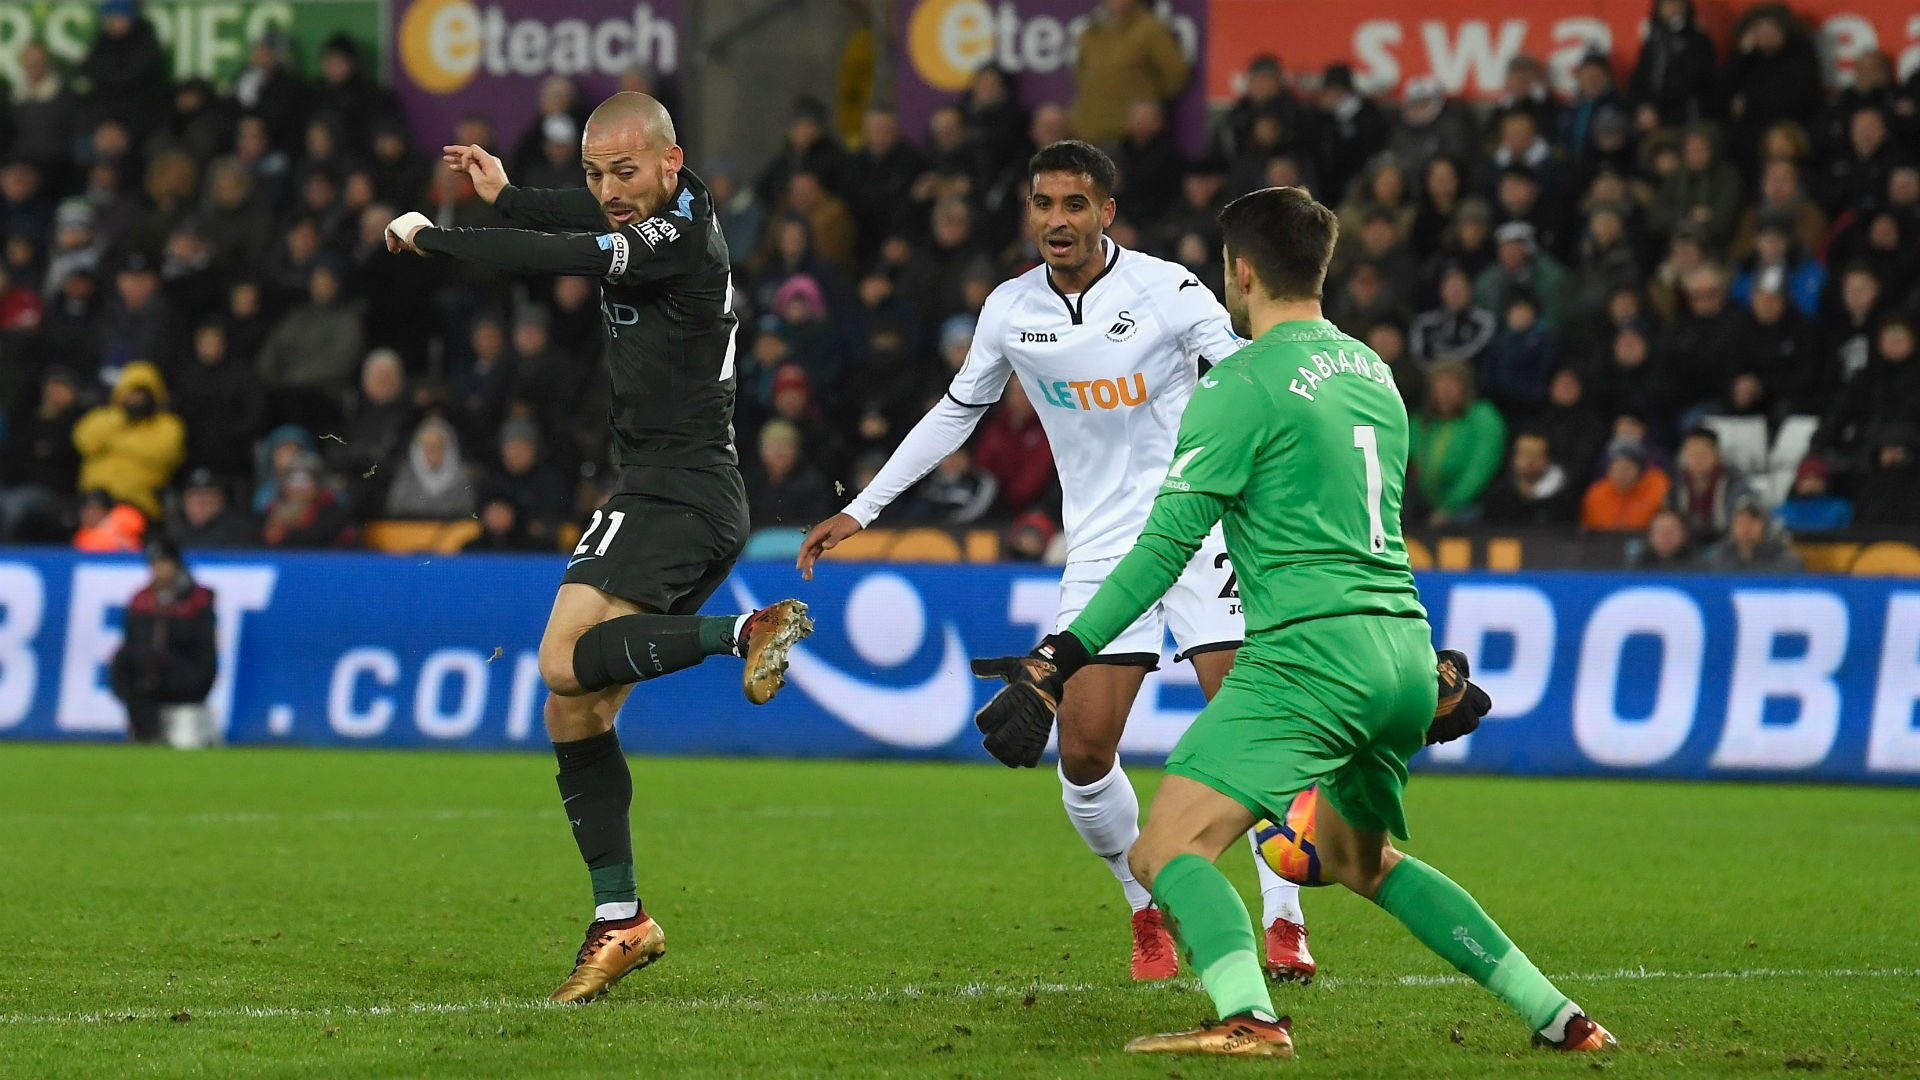 BPL: Swansea City 0 Manchester City 4 - Silva sparkles as Guardiola's record-breakers march on